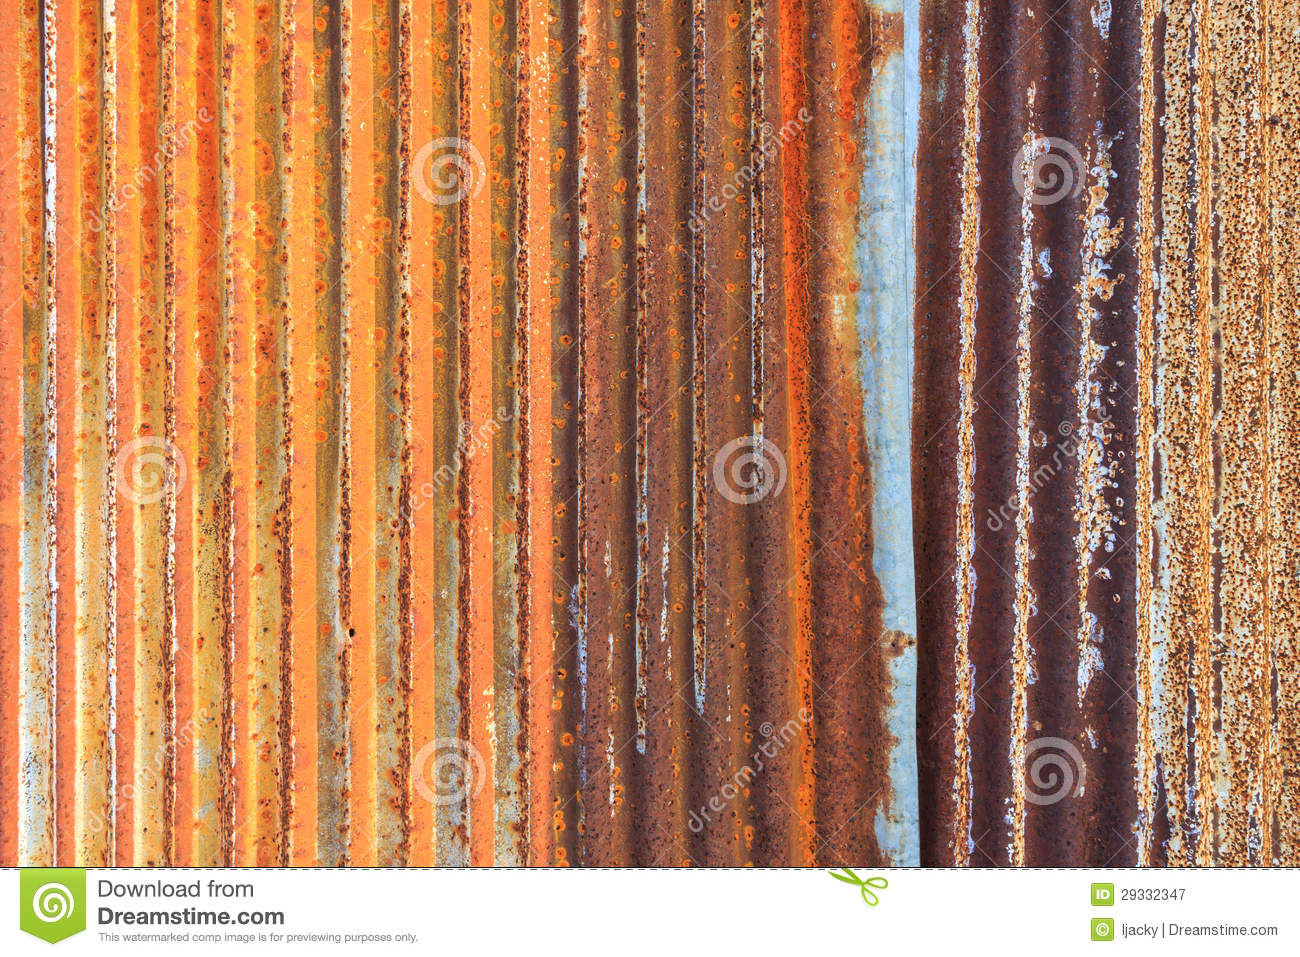 Corrugated Iron Zinc Corrugated Iron